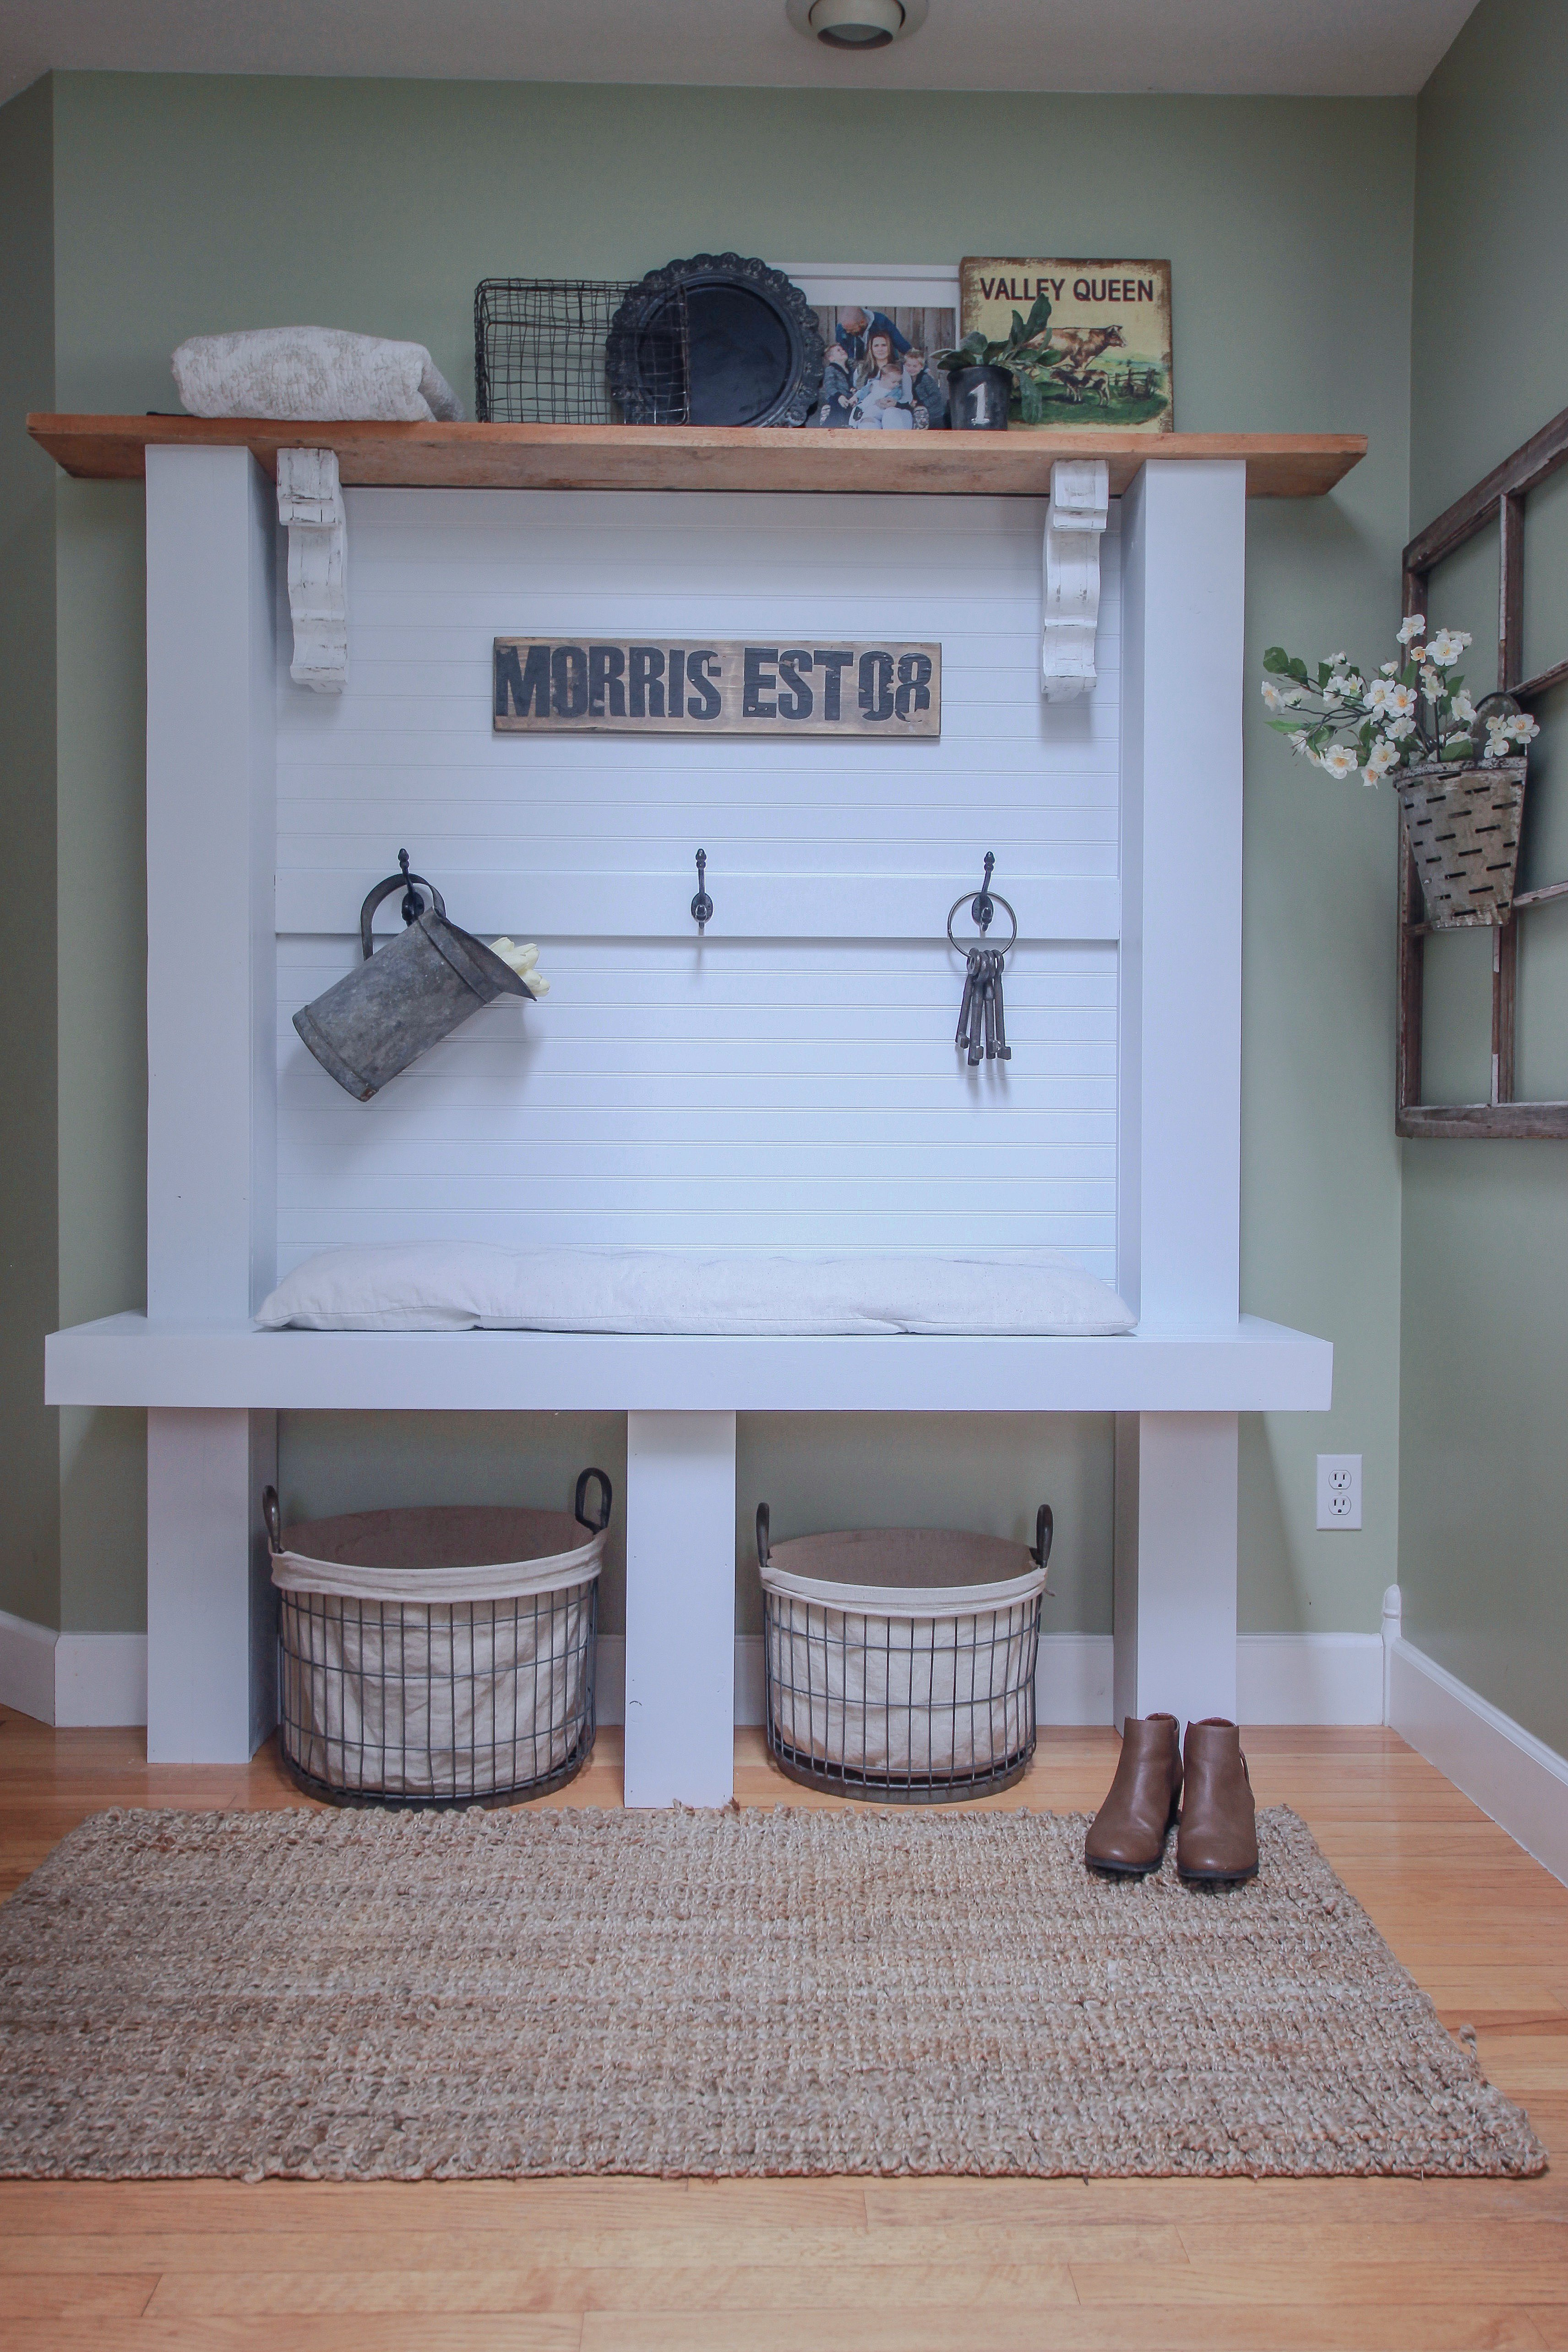 Our DIY Hall Bench Inspired By Liz Marie Galvan, DIY Hall Bench, Entrance Bench, DIY Corbels, Rough Cut Cedar, Wall bench, How To